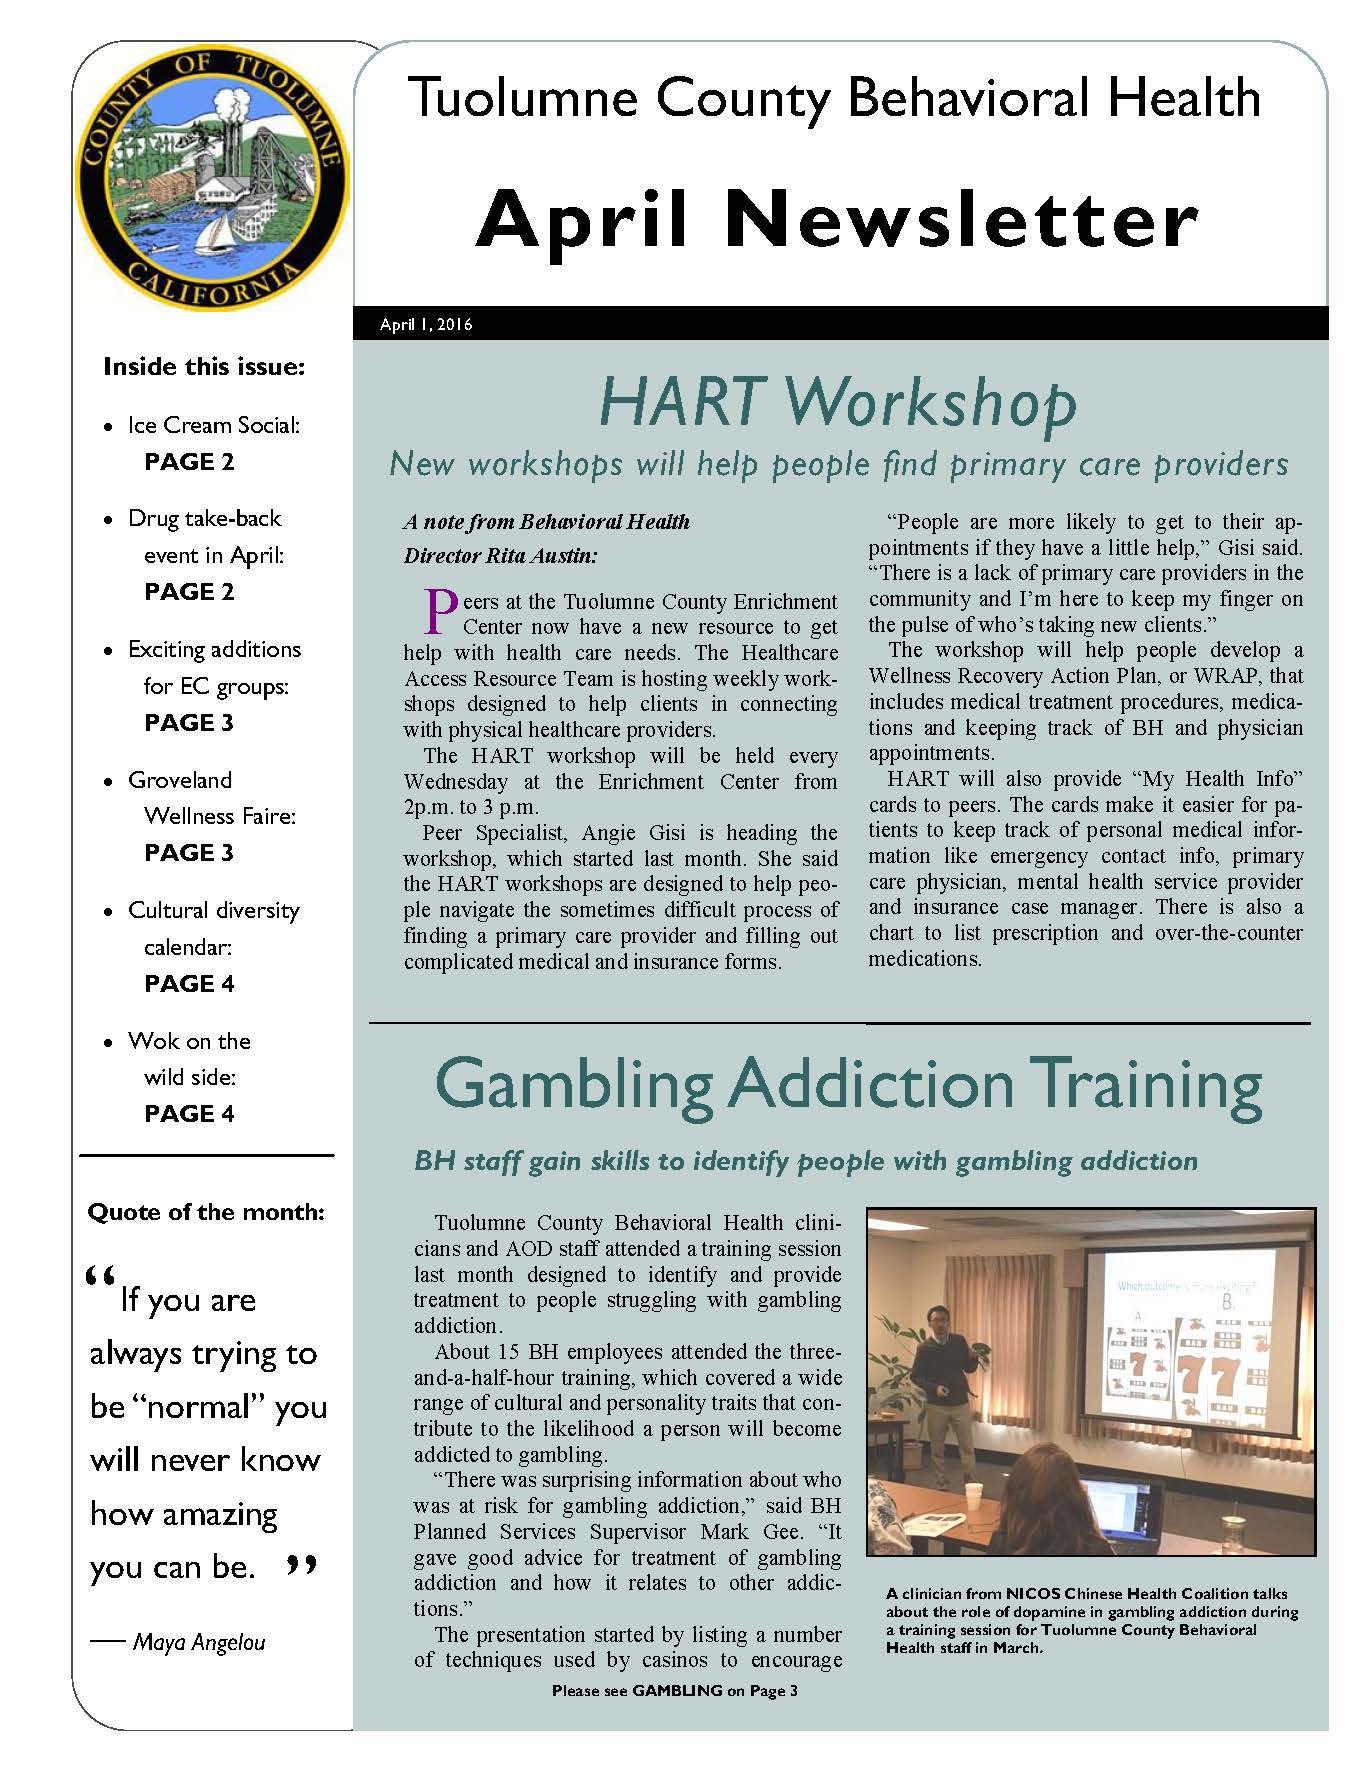 Beh Health April Newsletter Page 1